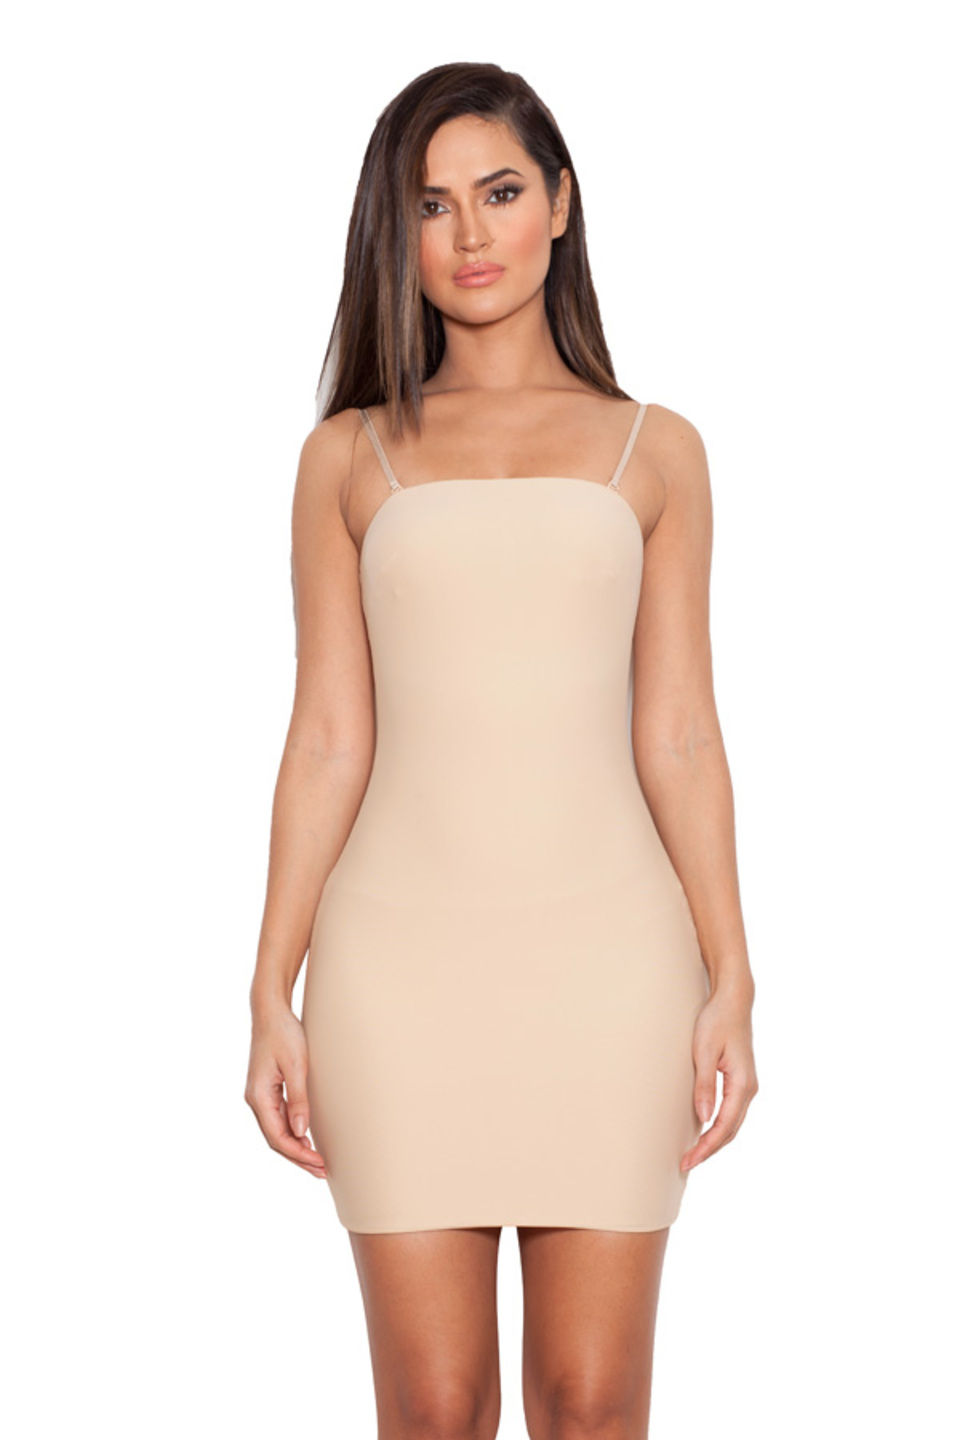 Nudist Nude Elastane Underdress Body Slip